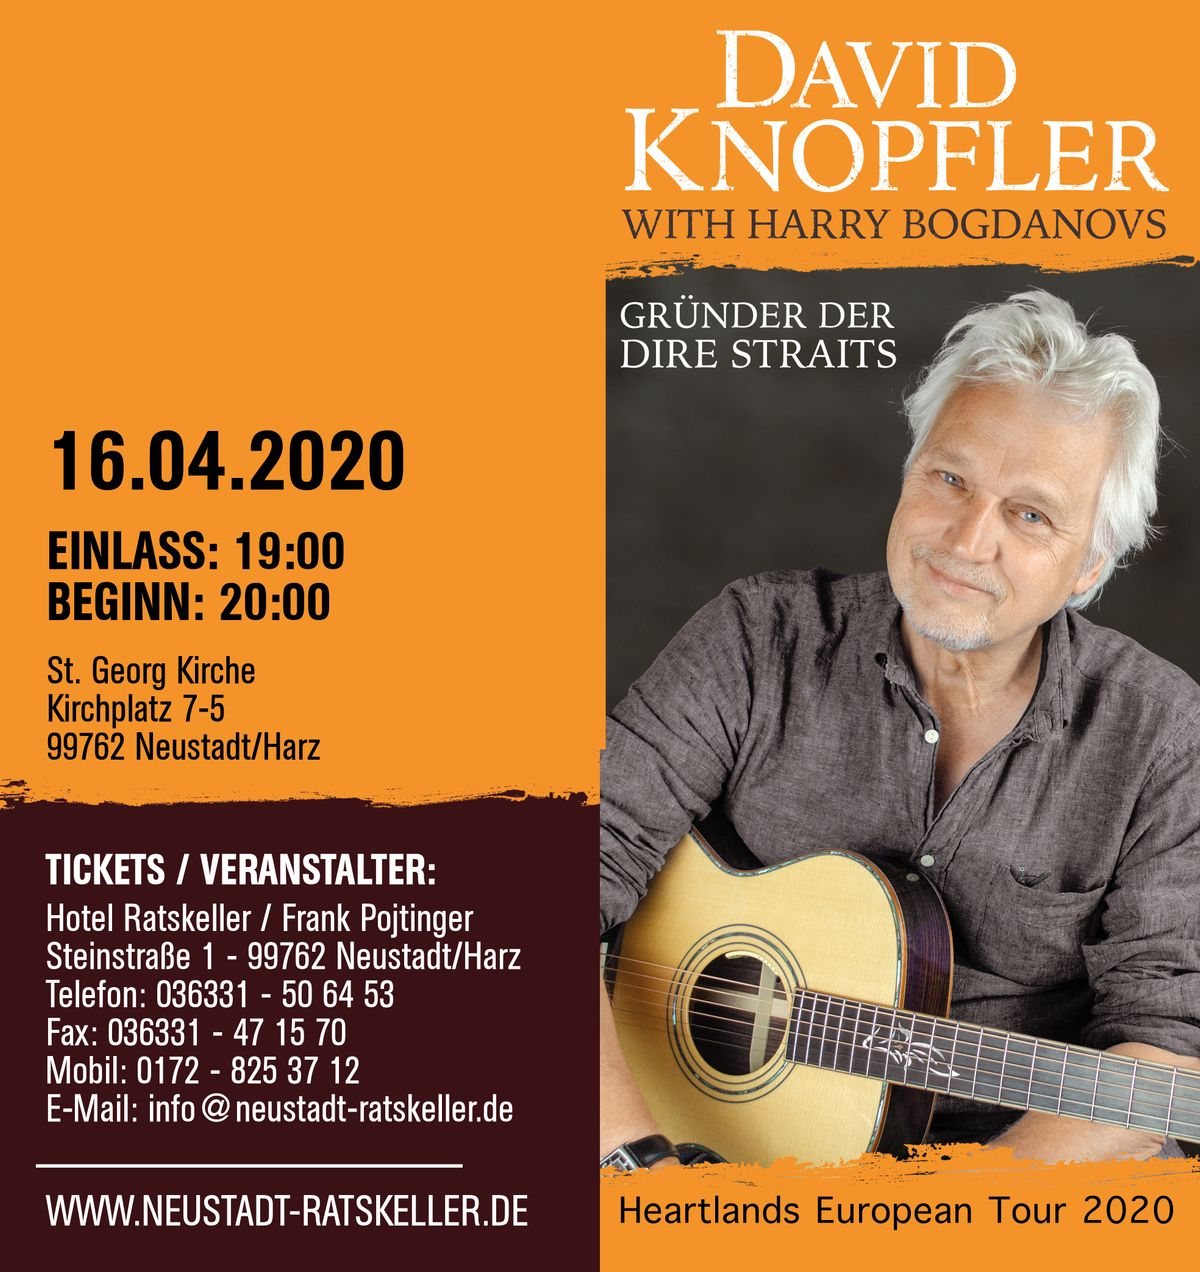 FLYER_Knopfler_Tour_10_RGB(1)